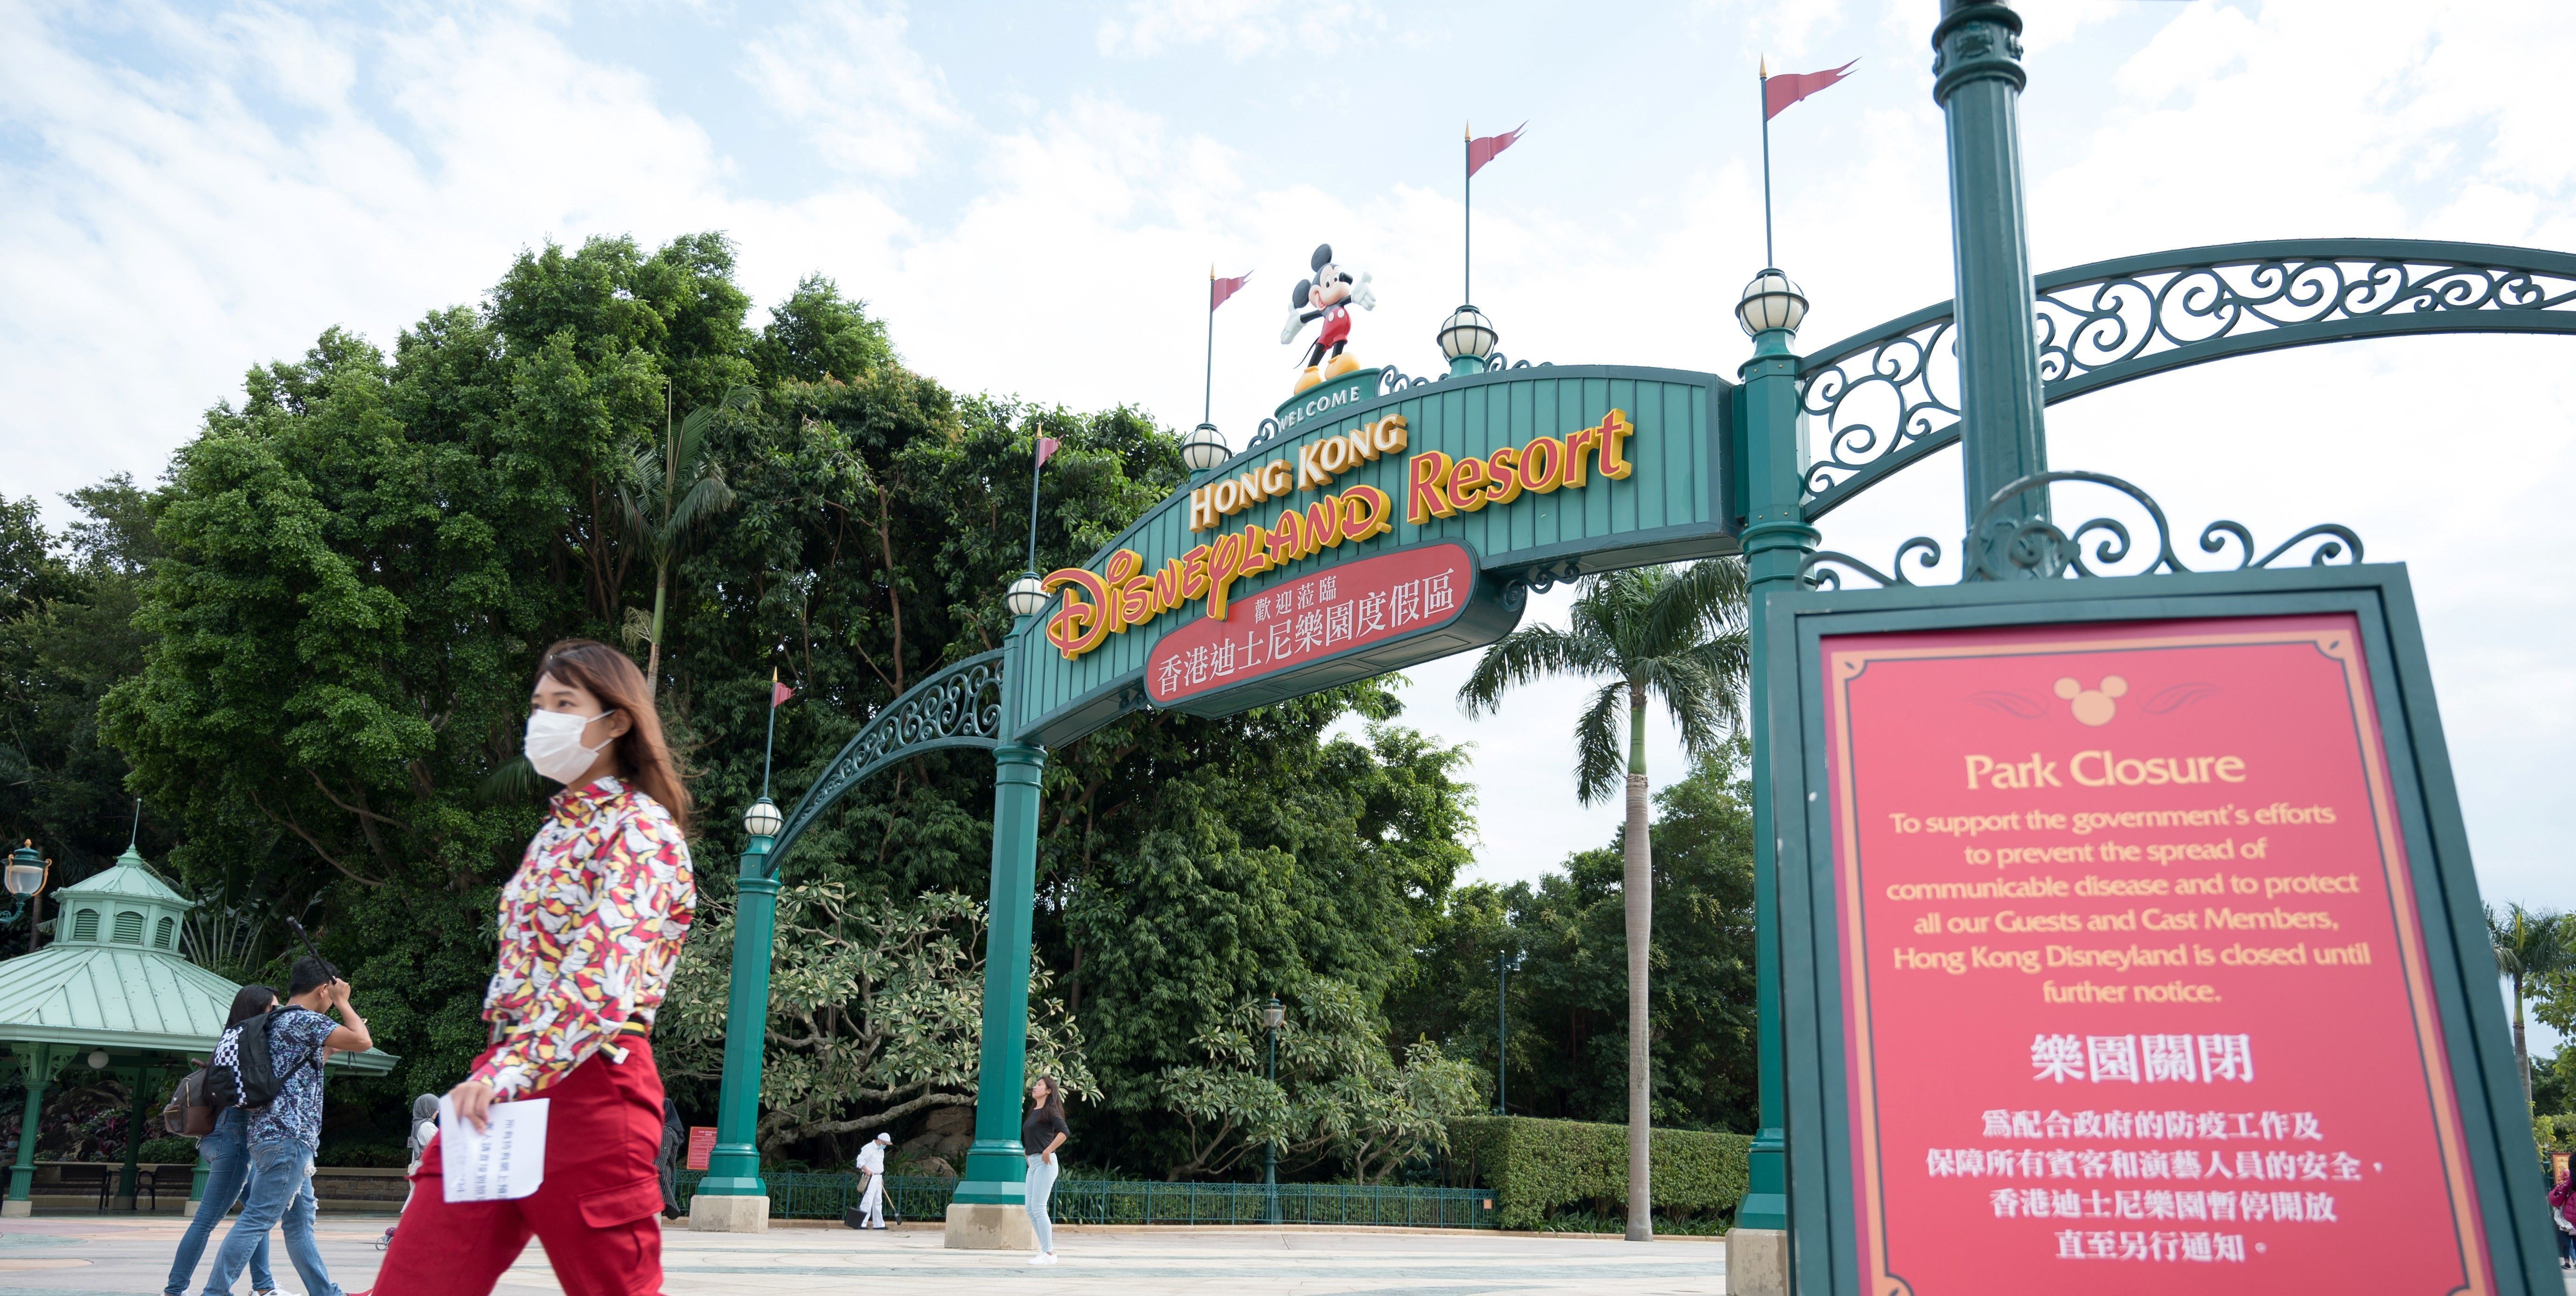 Some Disney Parks Have Closed Because Of The Coronavirus